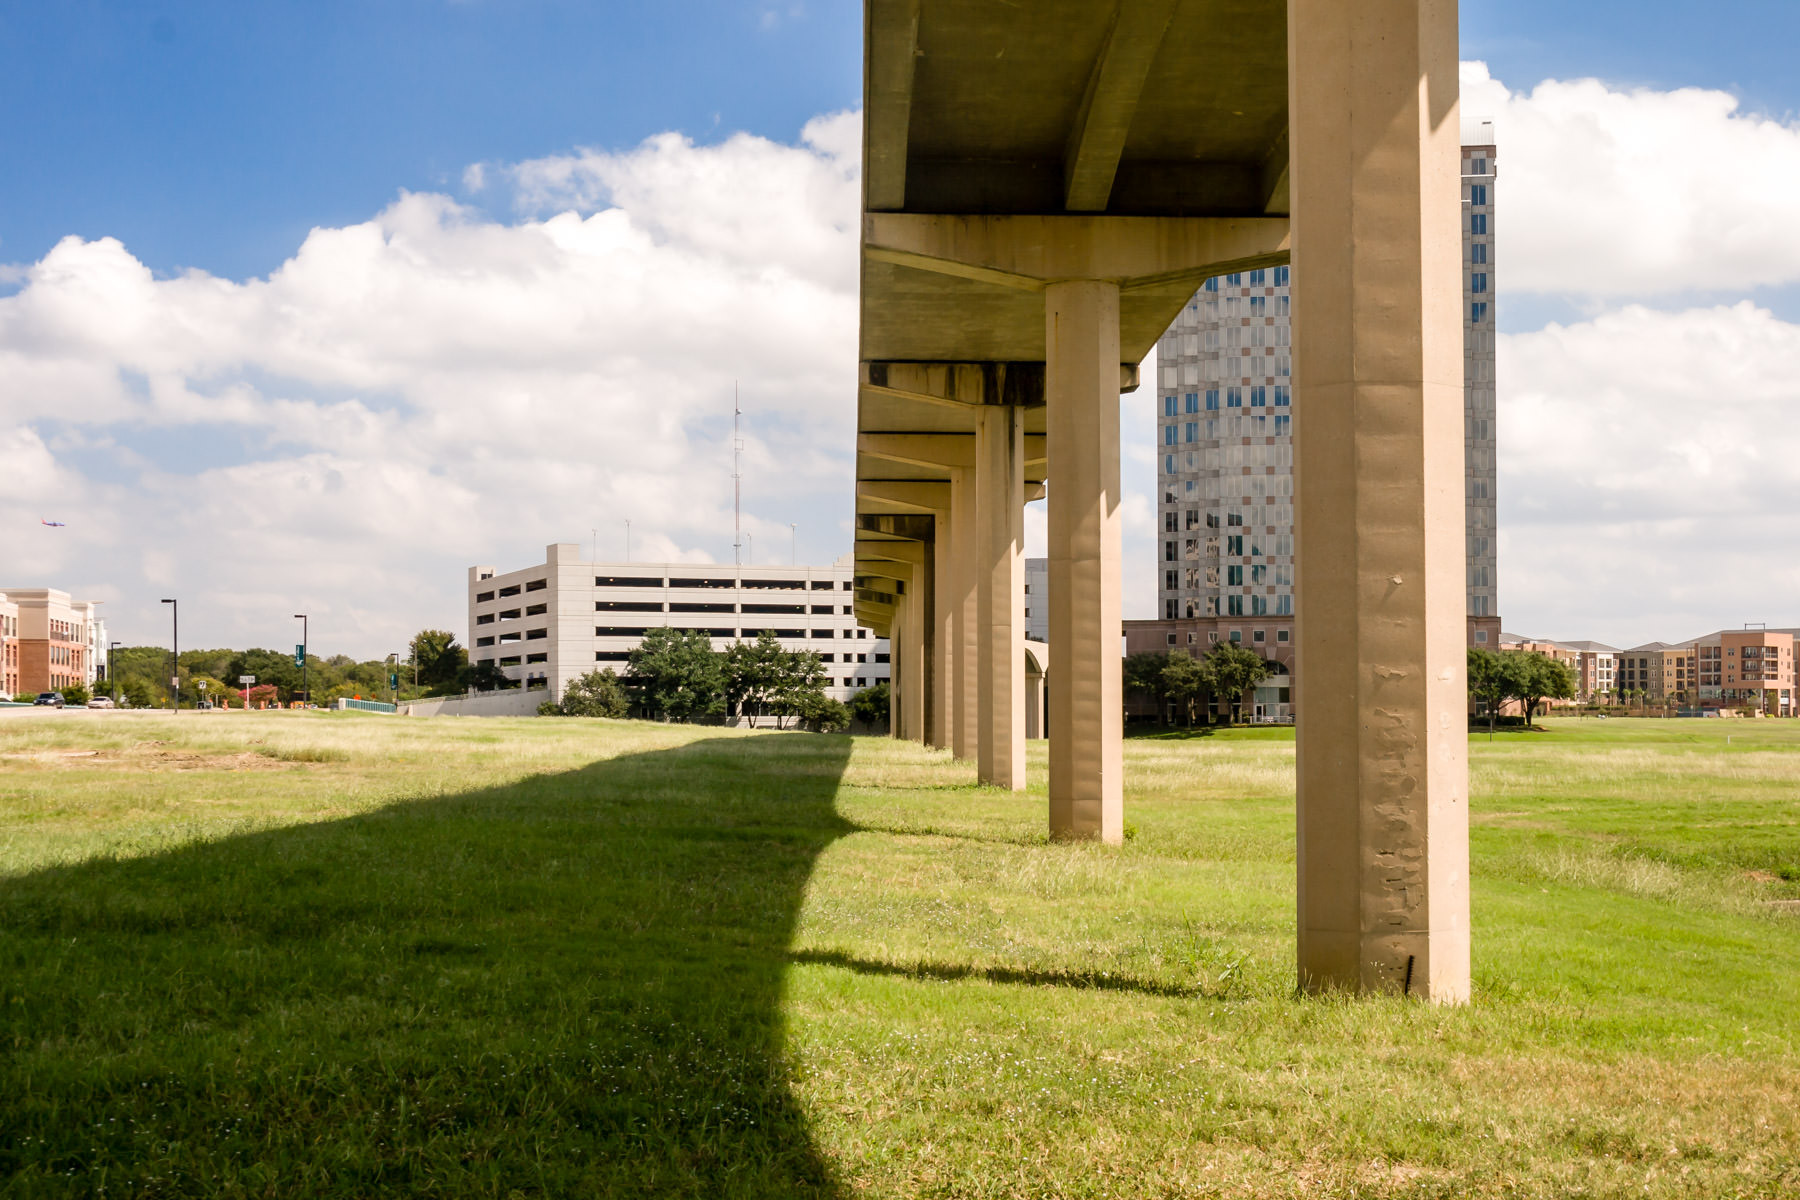 The rail track for the Las Colinas People Mover, Irving, Texas.